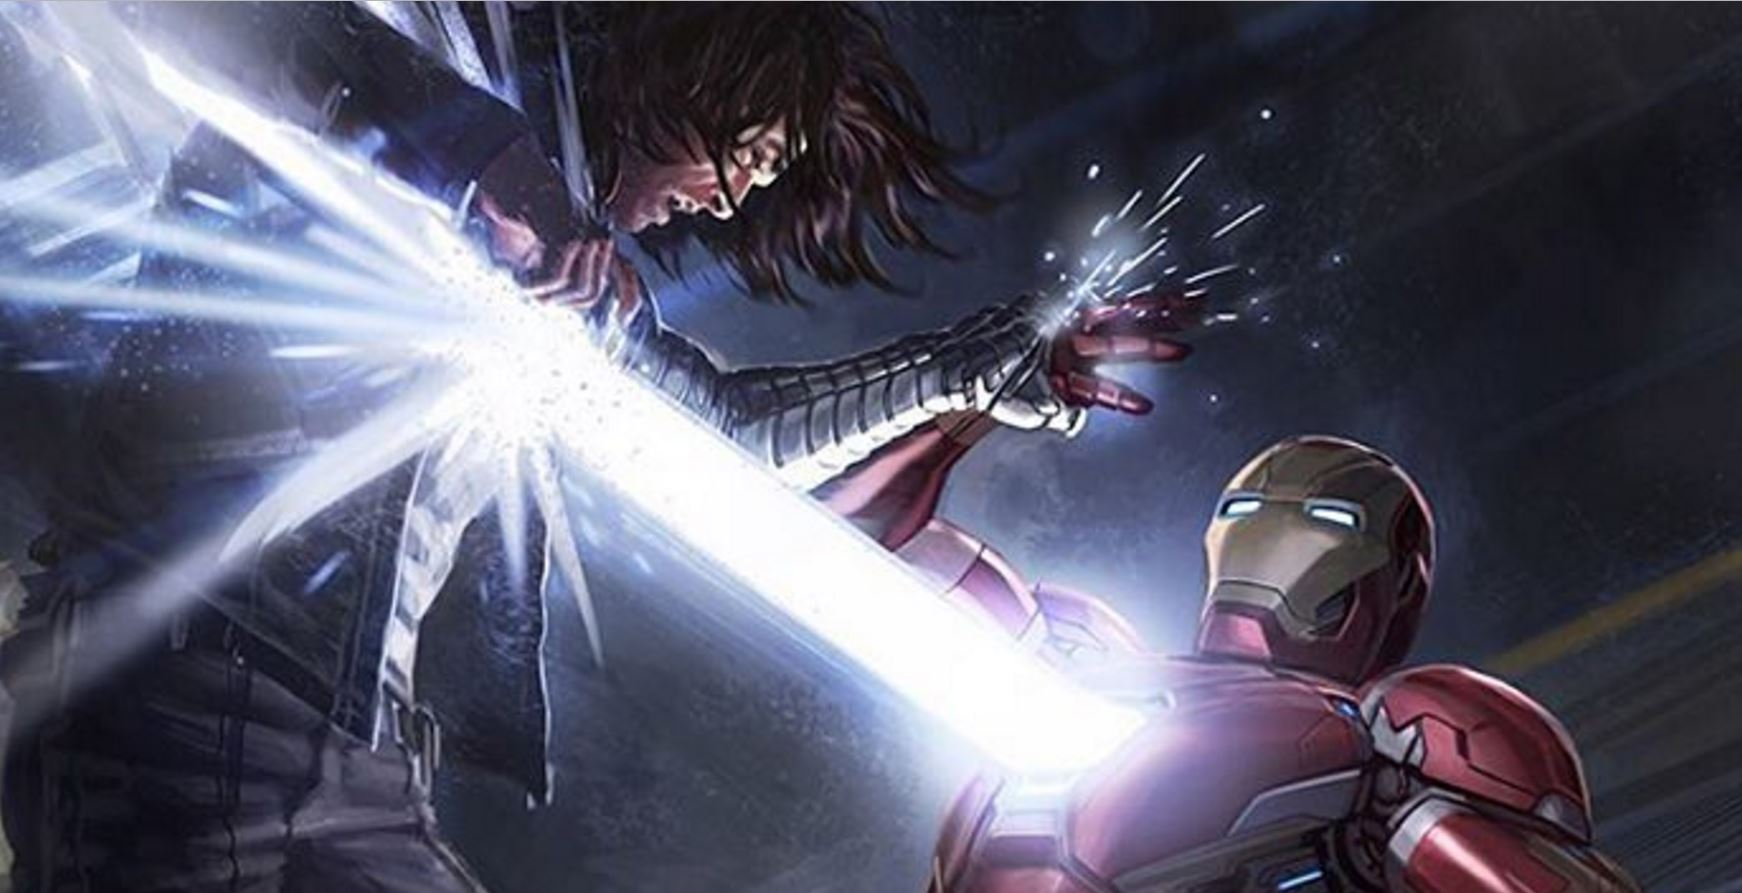 Civil War Concept Art Shows Iron Man Blasting the S*** out of Winter Soldier!